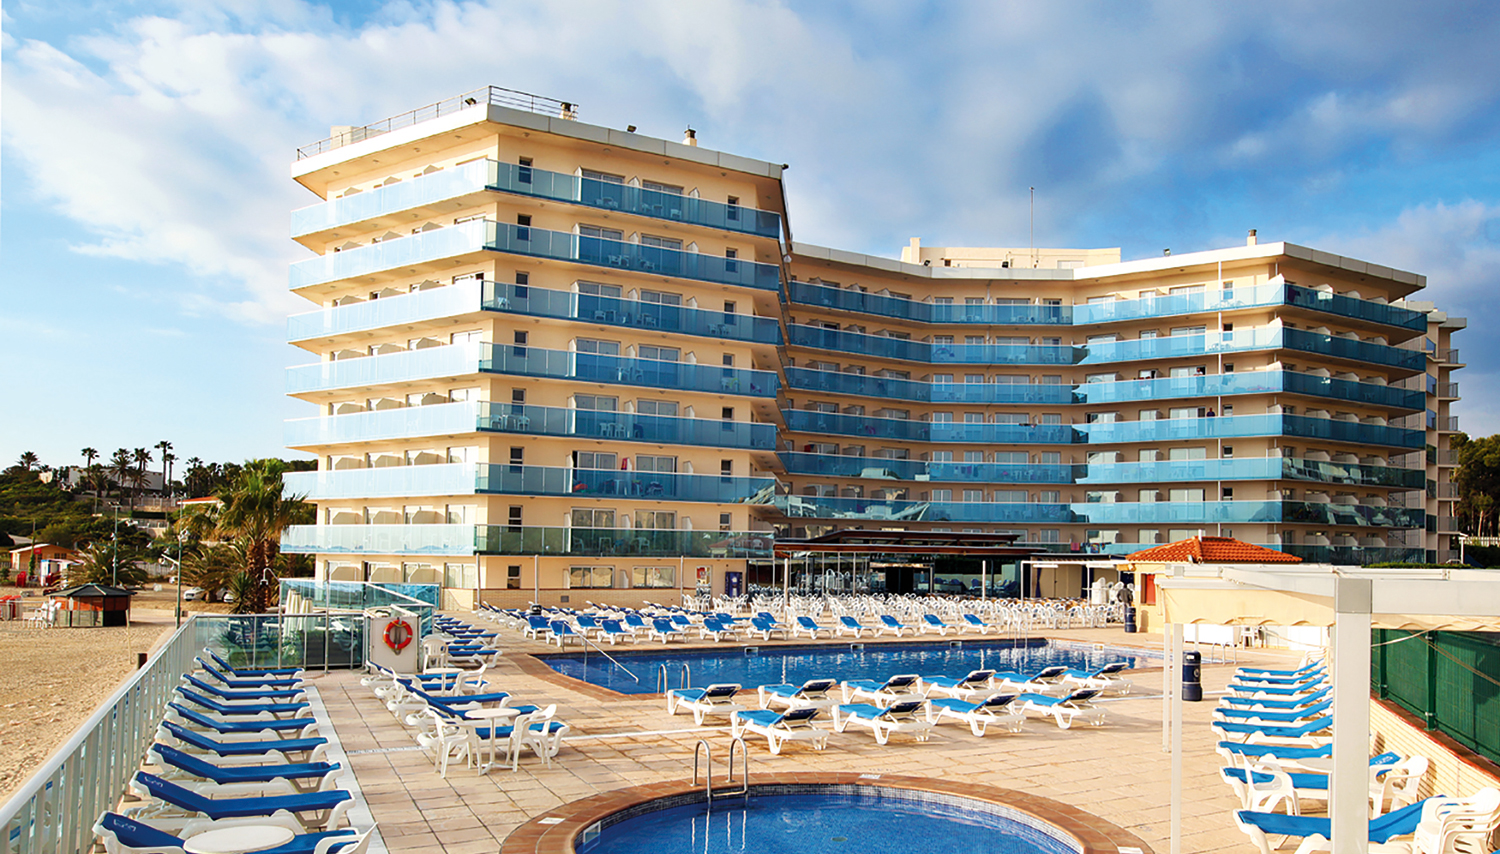 Golden Donaire Beach hotell (Barcelona, Hispaania)